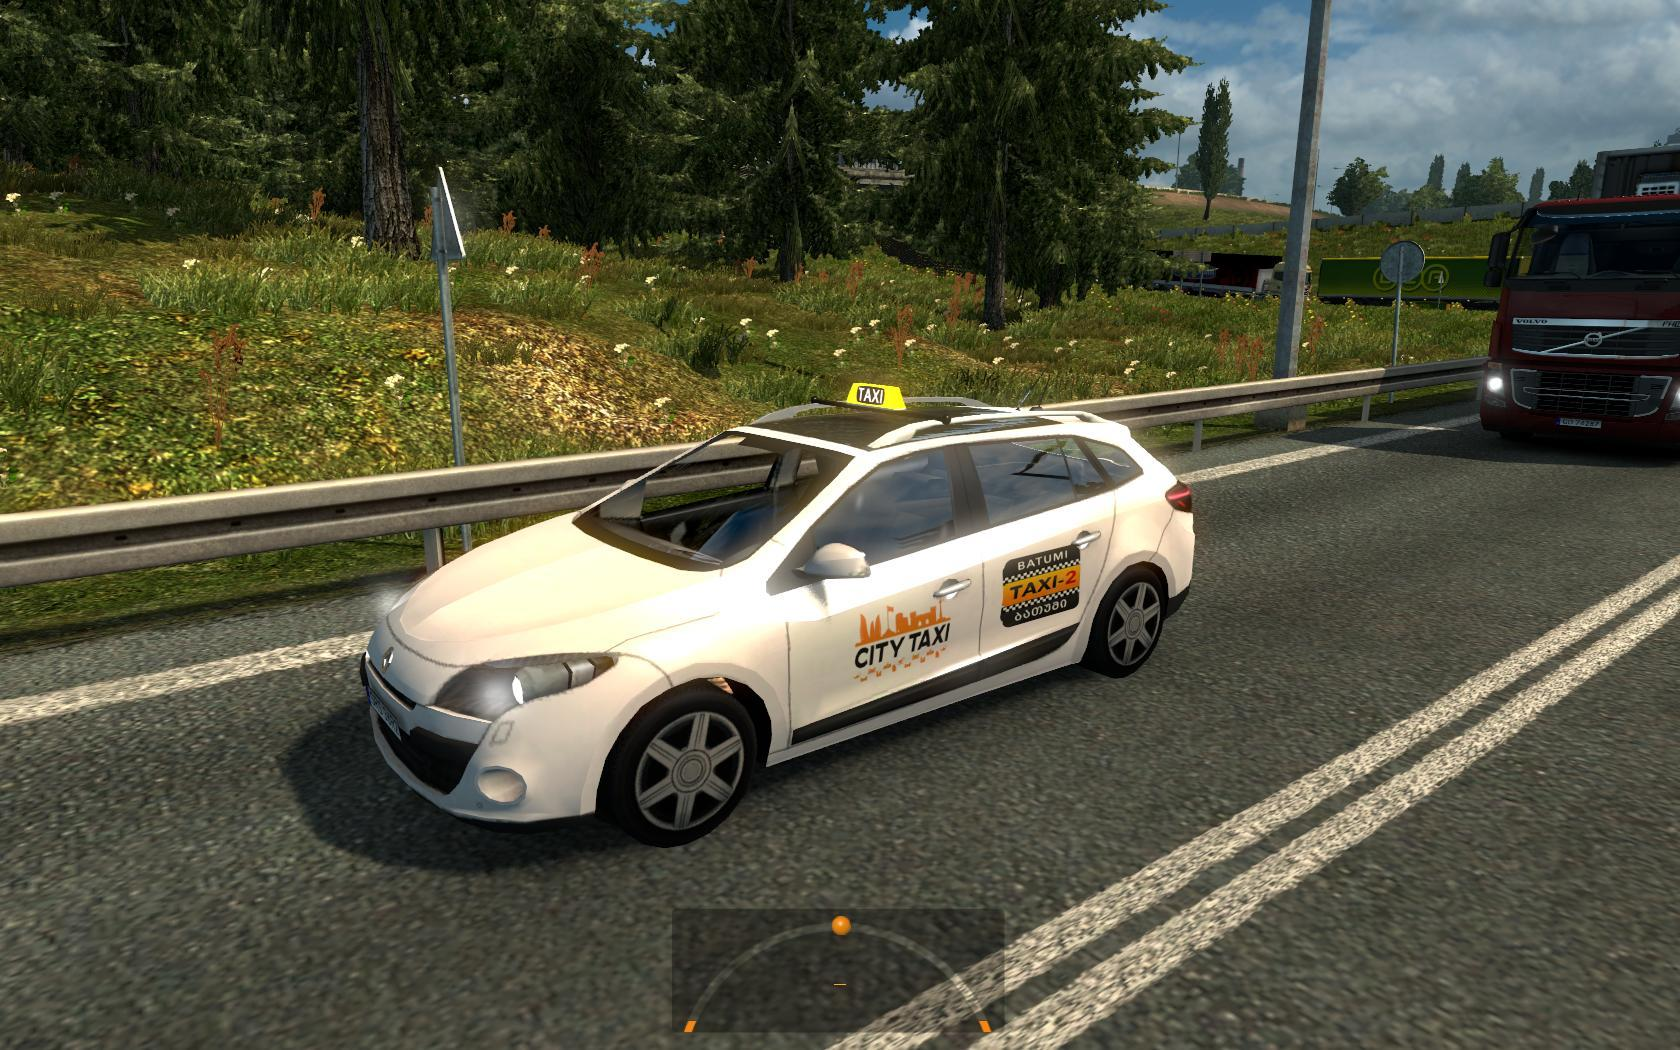 two-taxis-in-traffic-1-24-0-beta_1